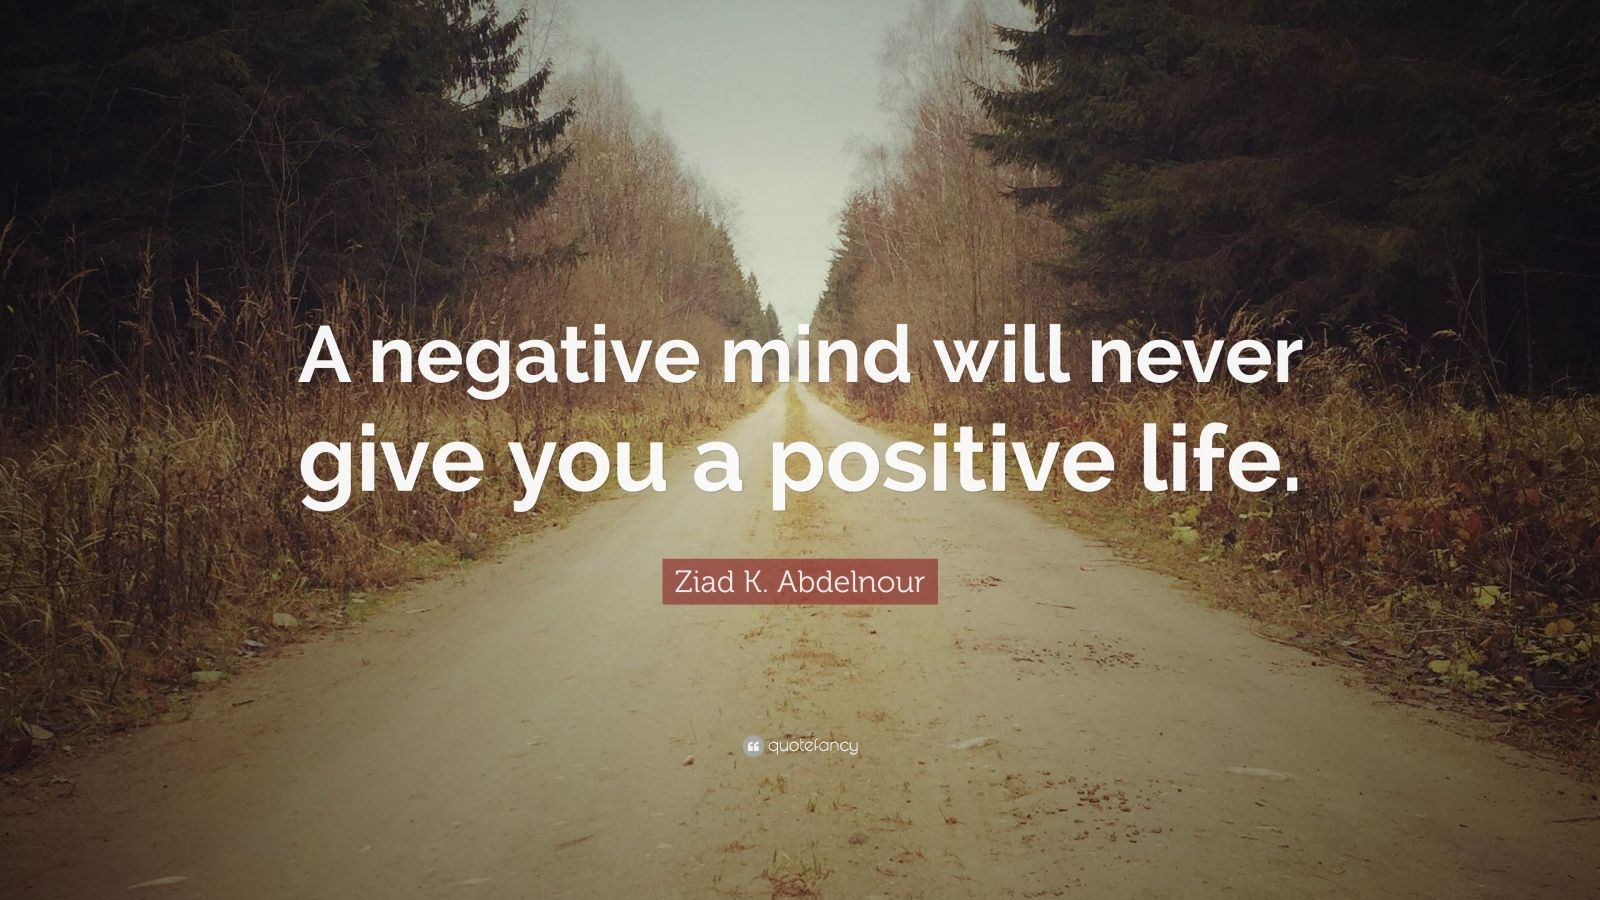 """Ziad K. Abdelnour Quote: """"A negative mind will never give you a positive life."""""""